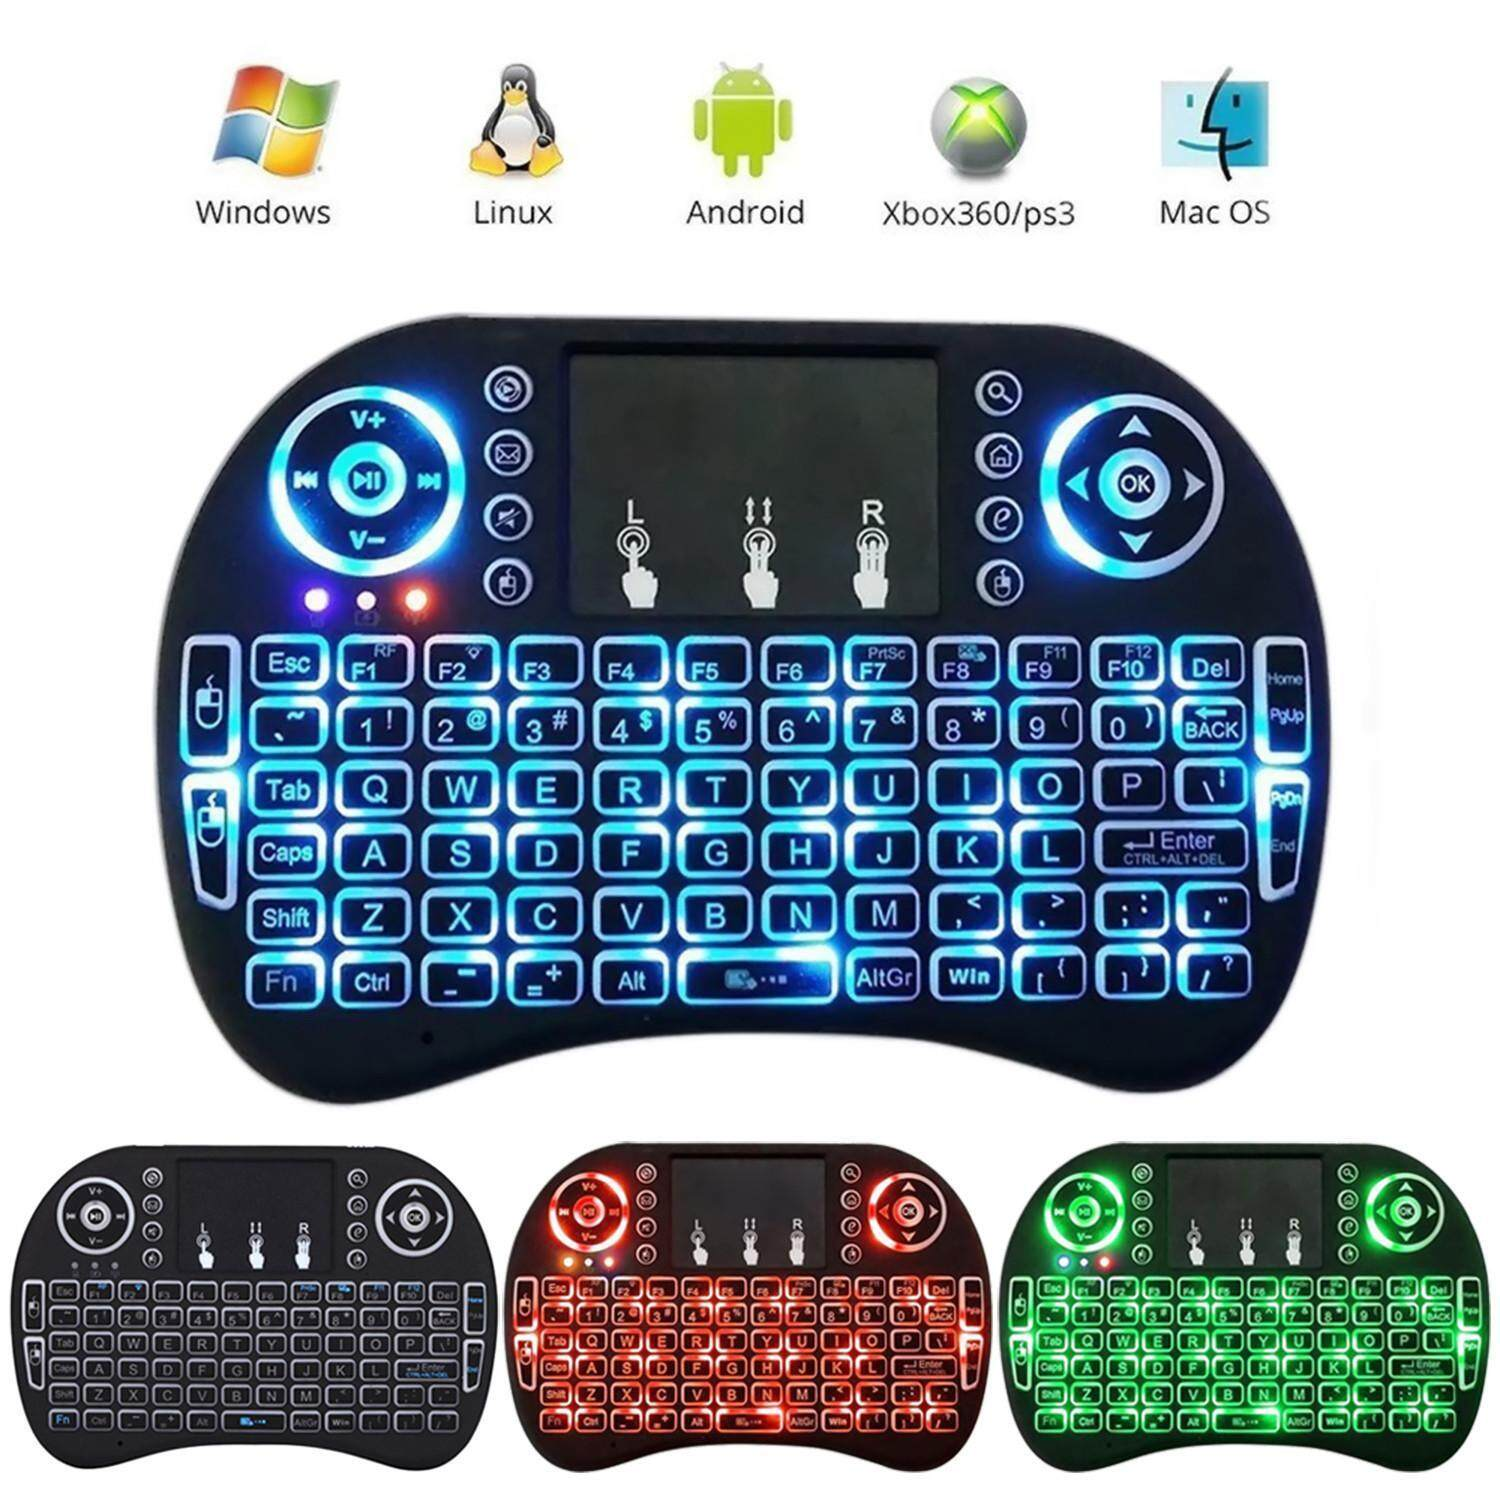 leegoal Rii I8 Mini 2.4Ghz Wireless Touchpad Keyboard With Mouse For Pc, Pad, Xbox 360, Ps3, Google Android Tv Box, Htpc, Iptv (Black) Malaysia